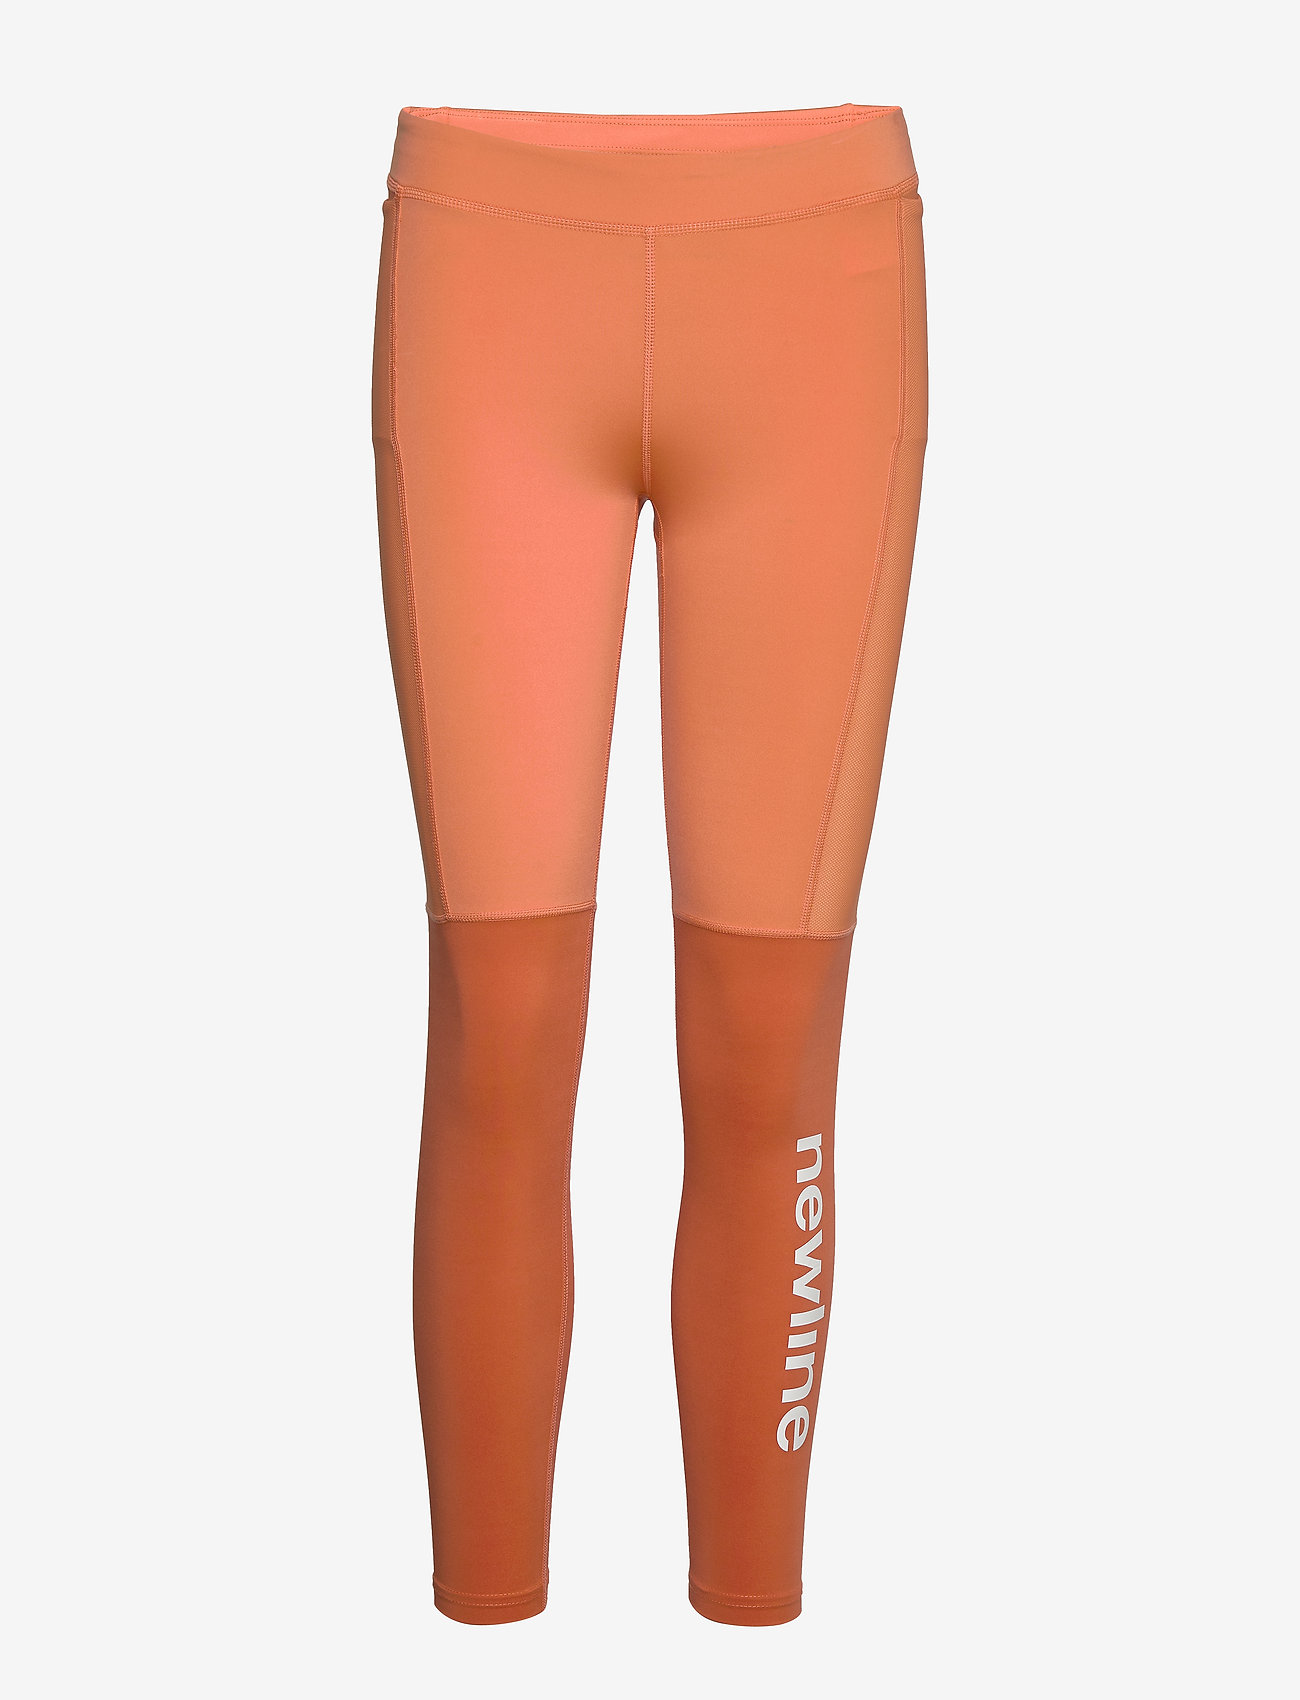 Newline - Women's 7/8 Tights - running & training tights - mecca orange/dusted clay - 0